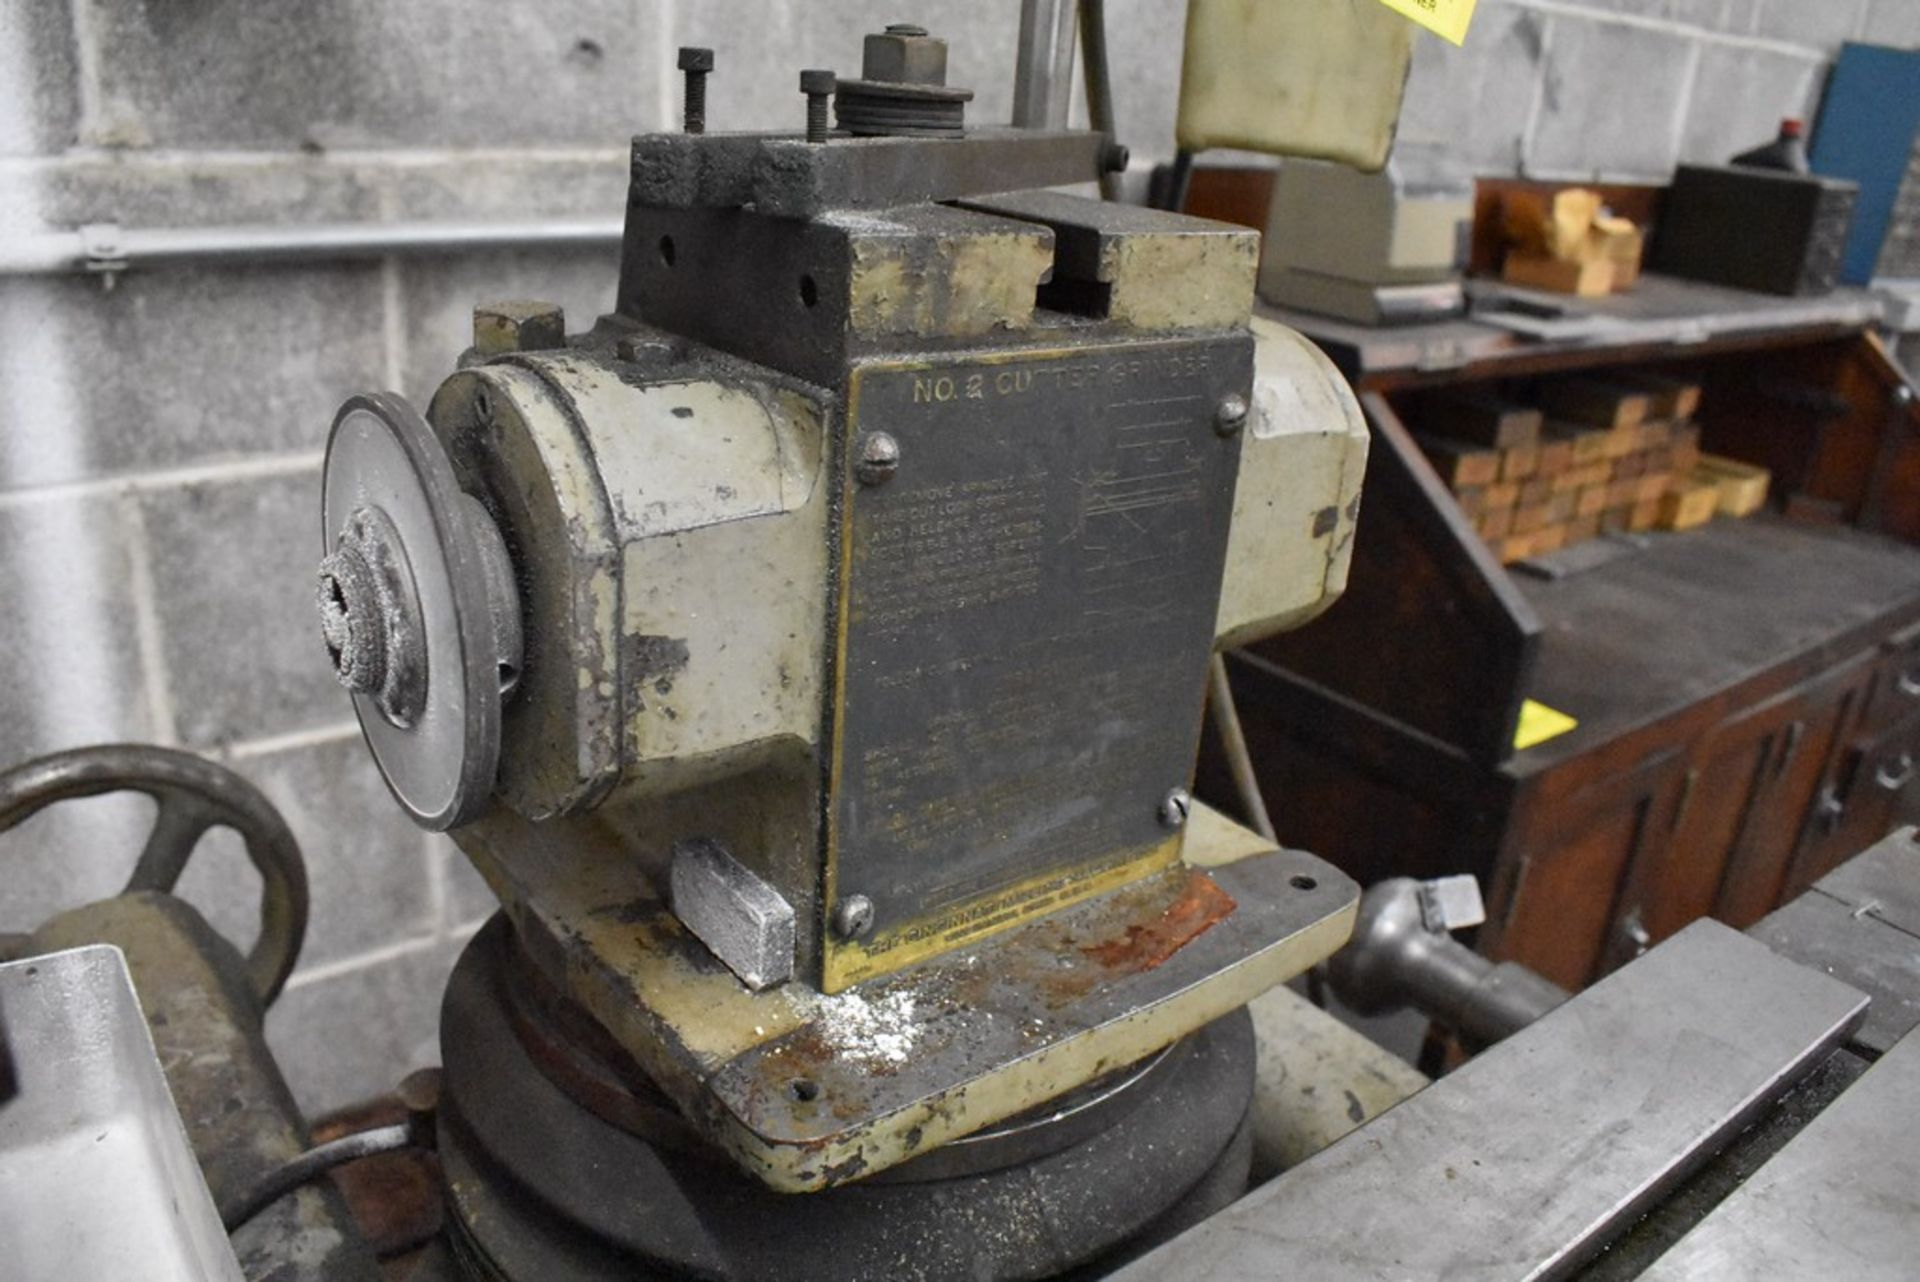 CINCINNATI NO. 2 TOOL AND CUTTER GRINDER, S/N 1D2T1Z-771, WITH MOTORIZED WORK HEAD - Image 12 of 14